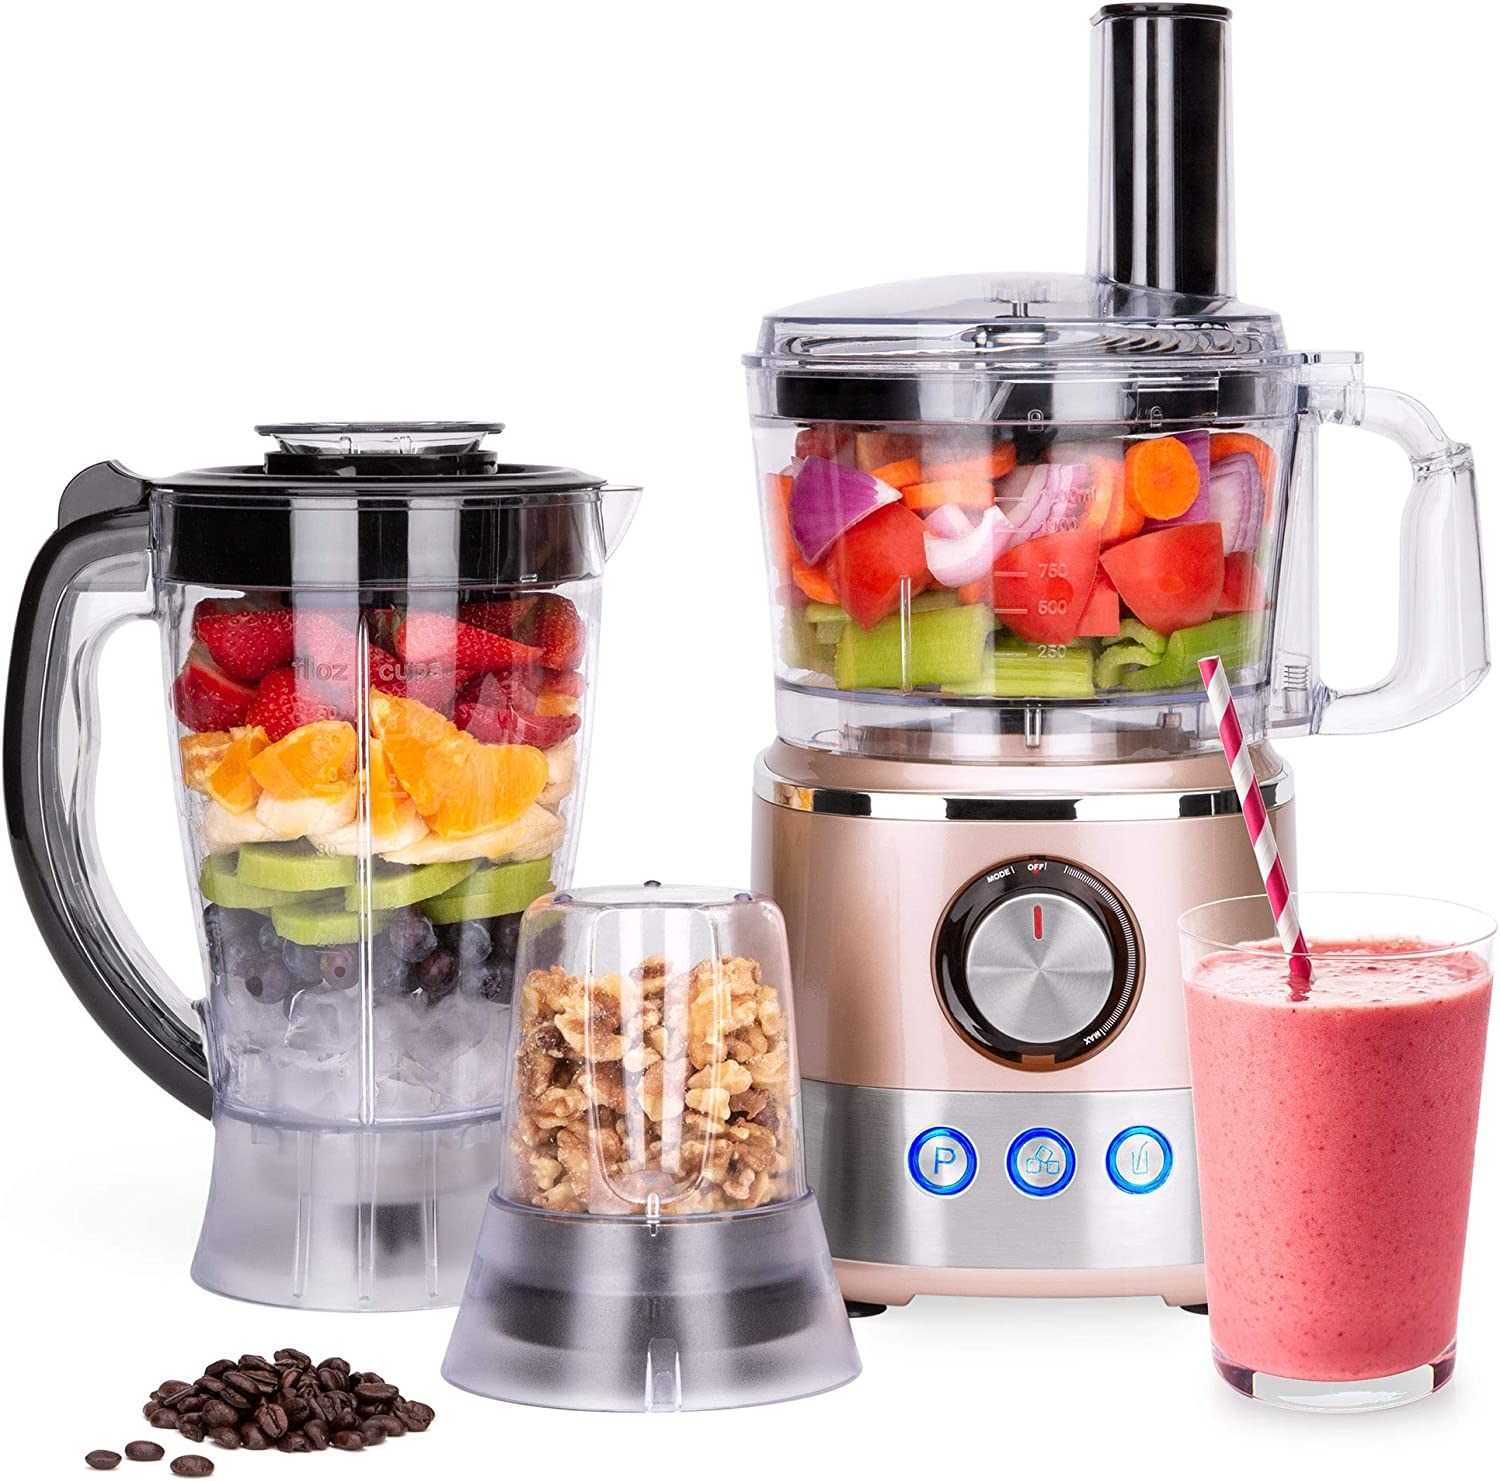 Best Choice Products 650W Multifunctional All-In-One Stainless Steel Food Processor, Blender, Grinder Combo w 7.4-Cup Capacity, 10 Attachments for Juicing, Cutting, Shredding, More, Rose Gold